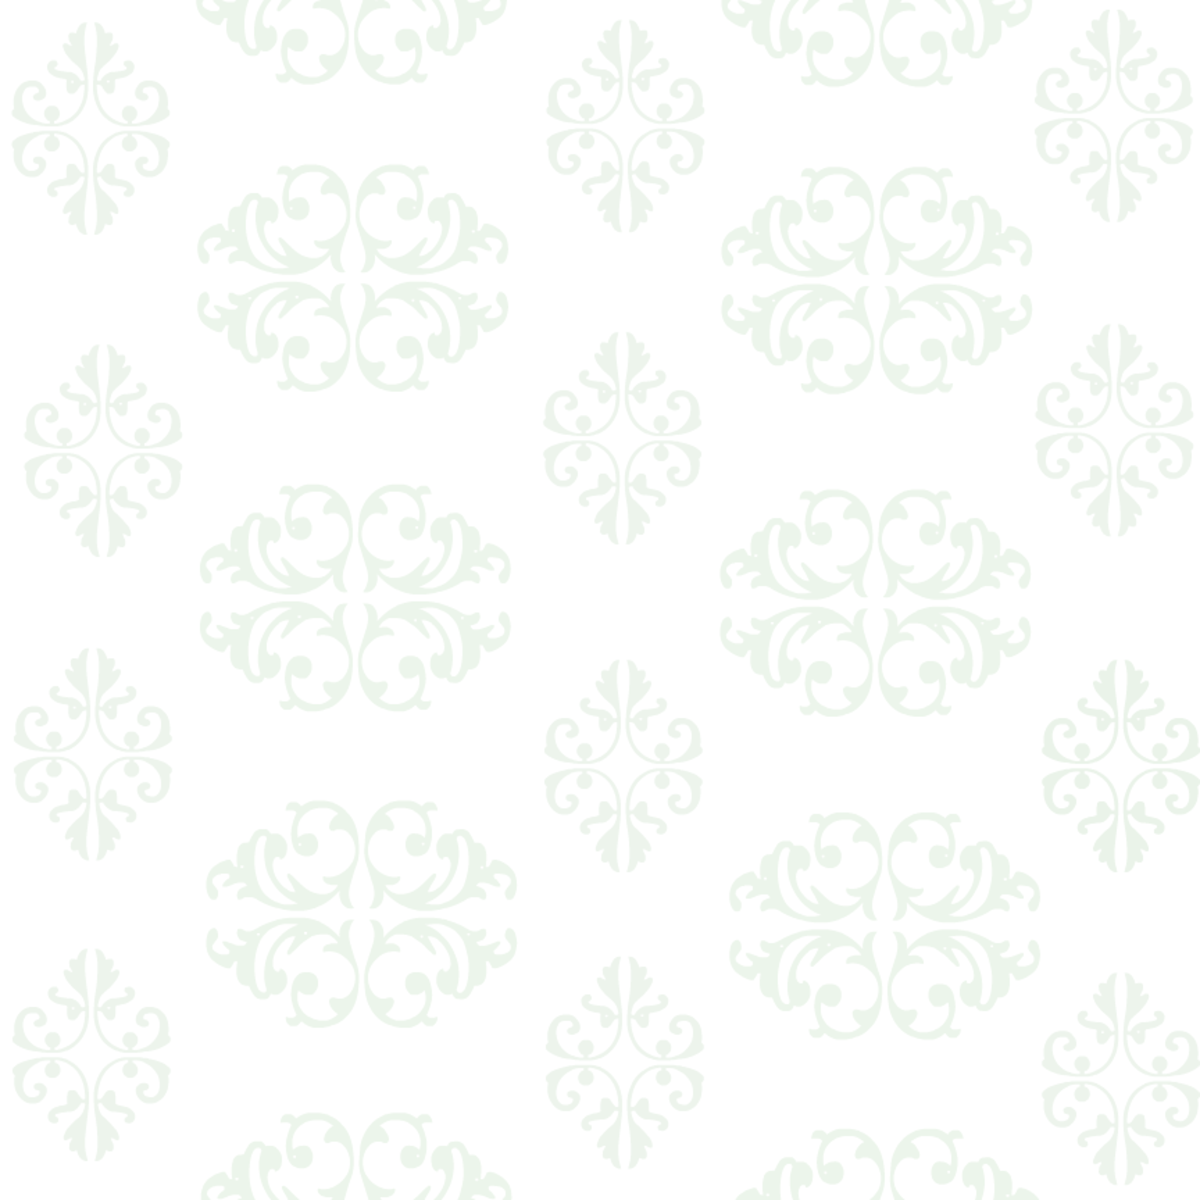 Free scrapbooking supplies: Scrollwork on a white background